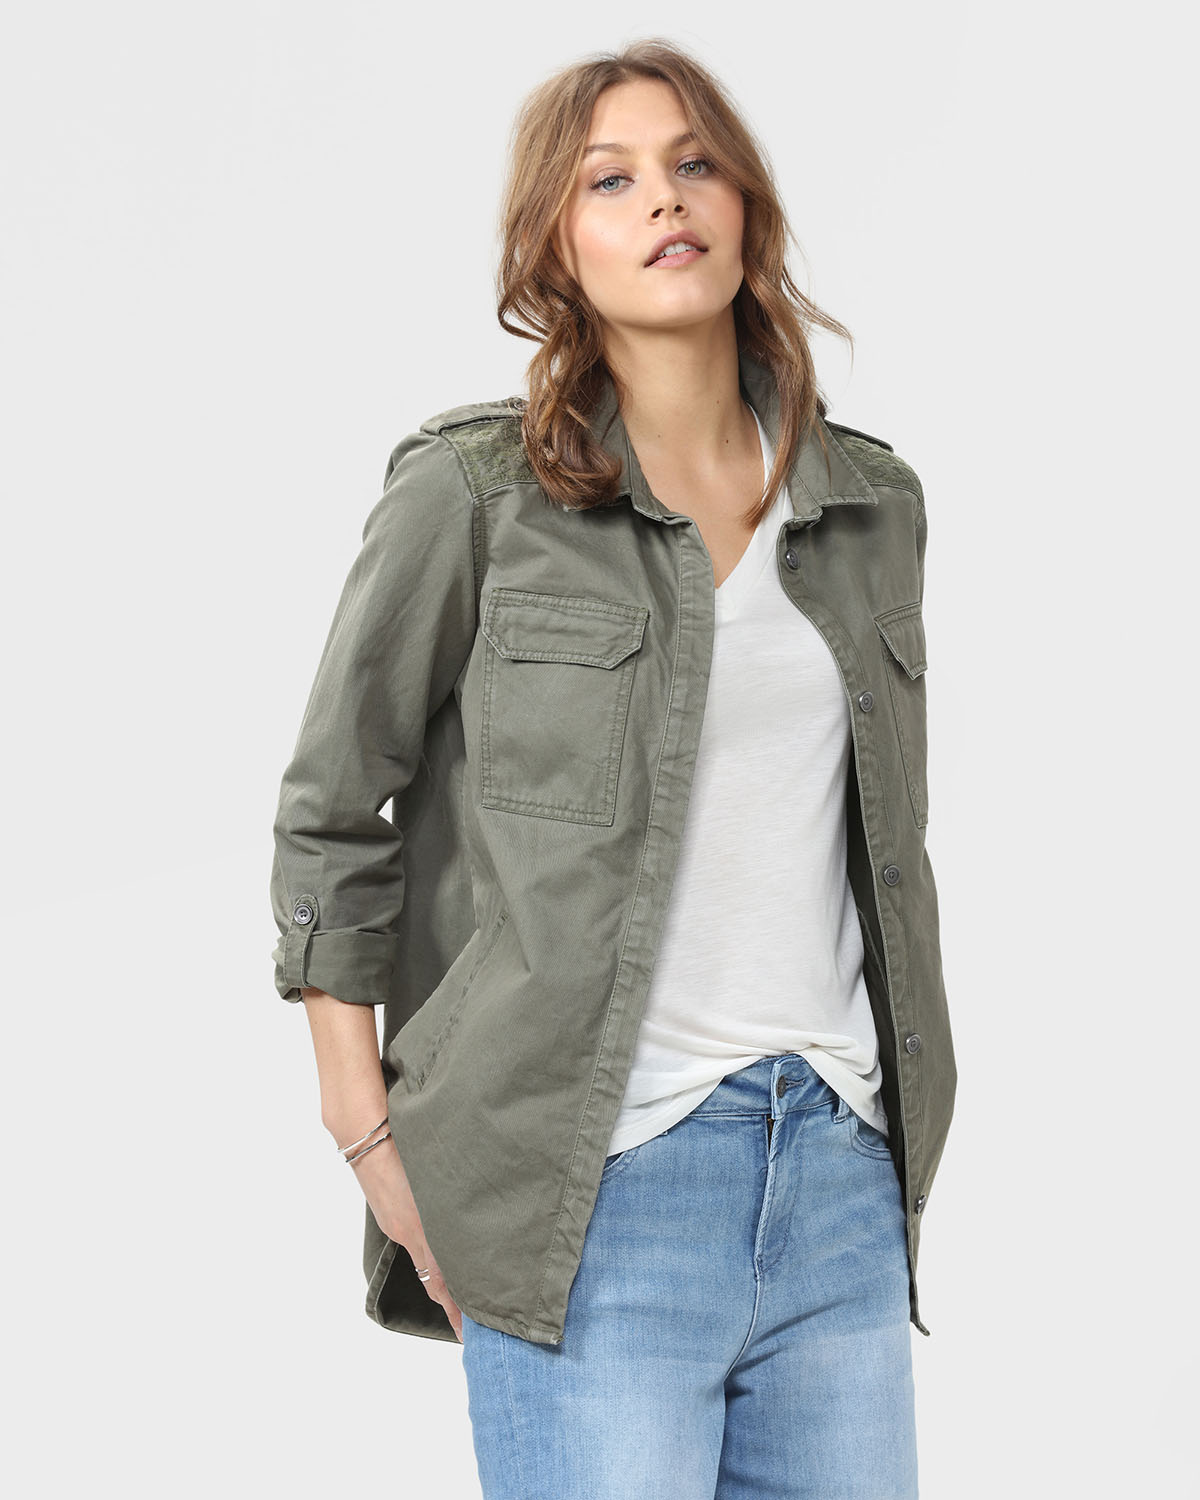 veste army femme 79191029 we fashion